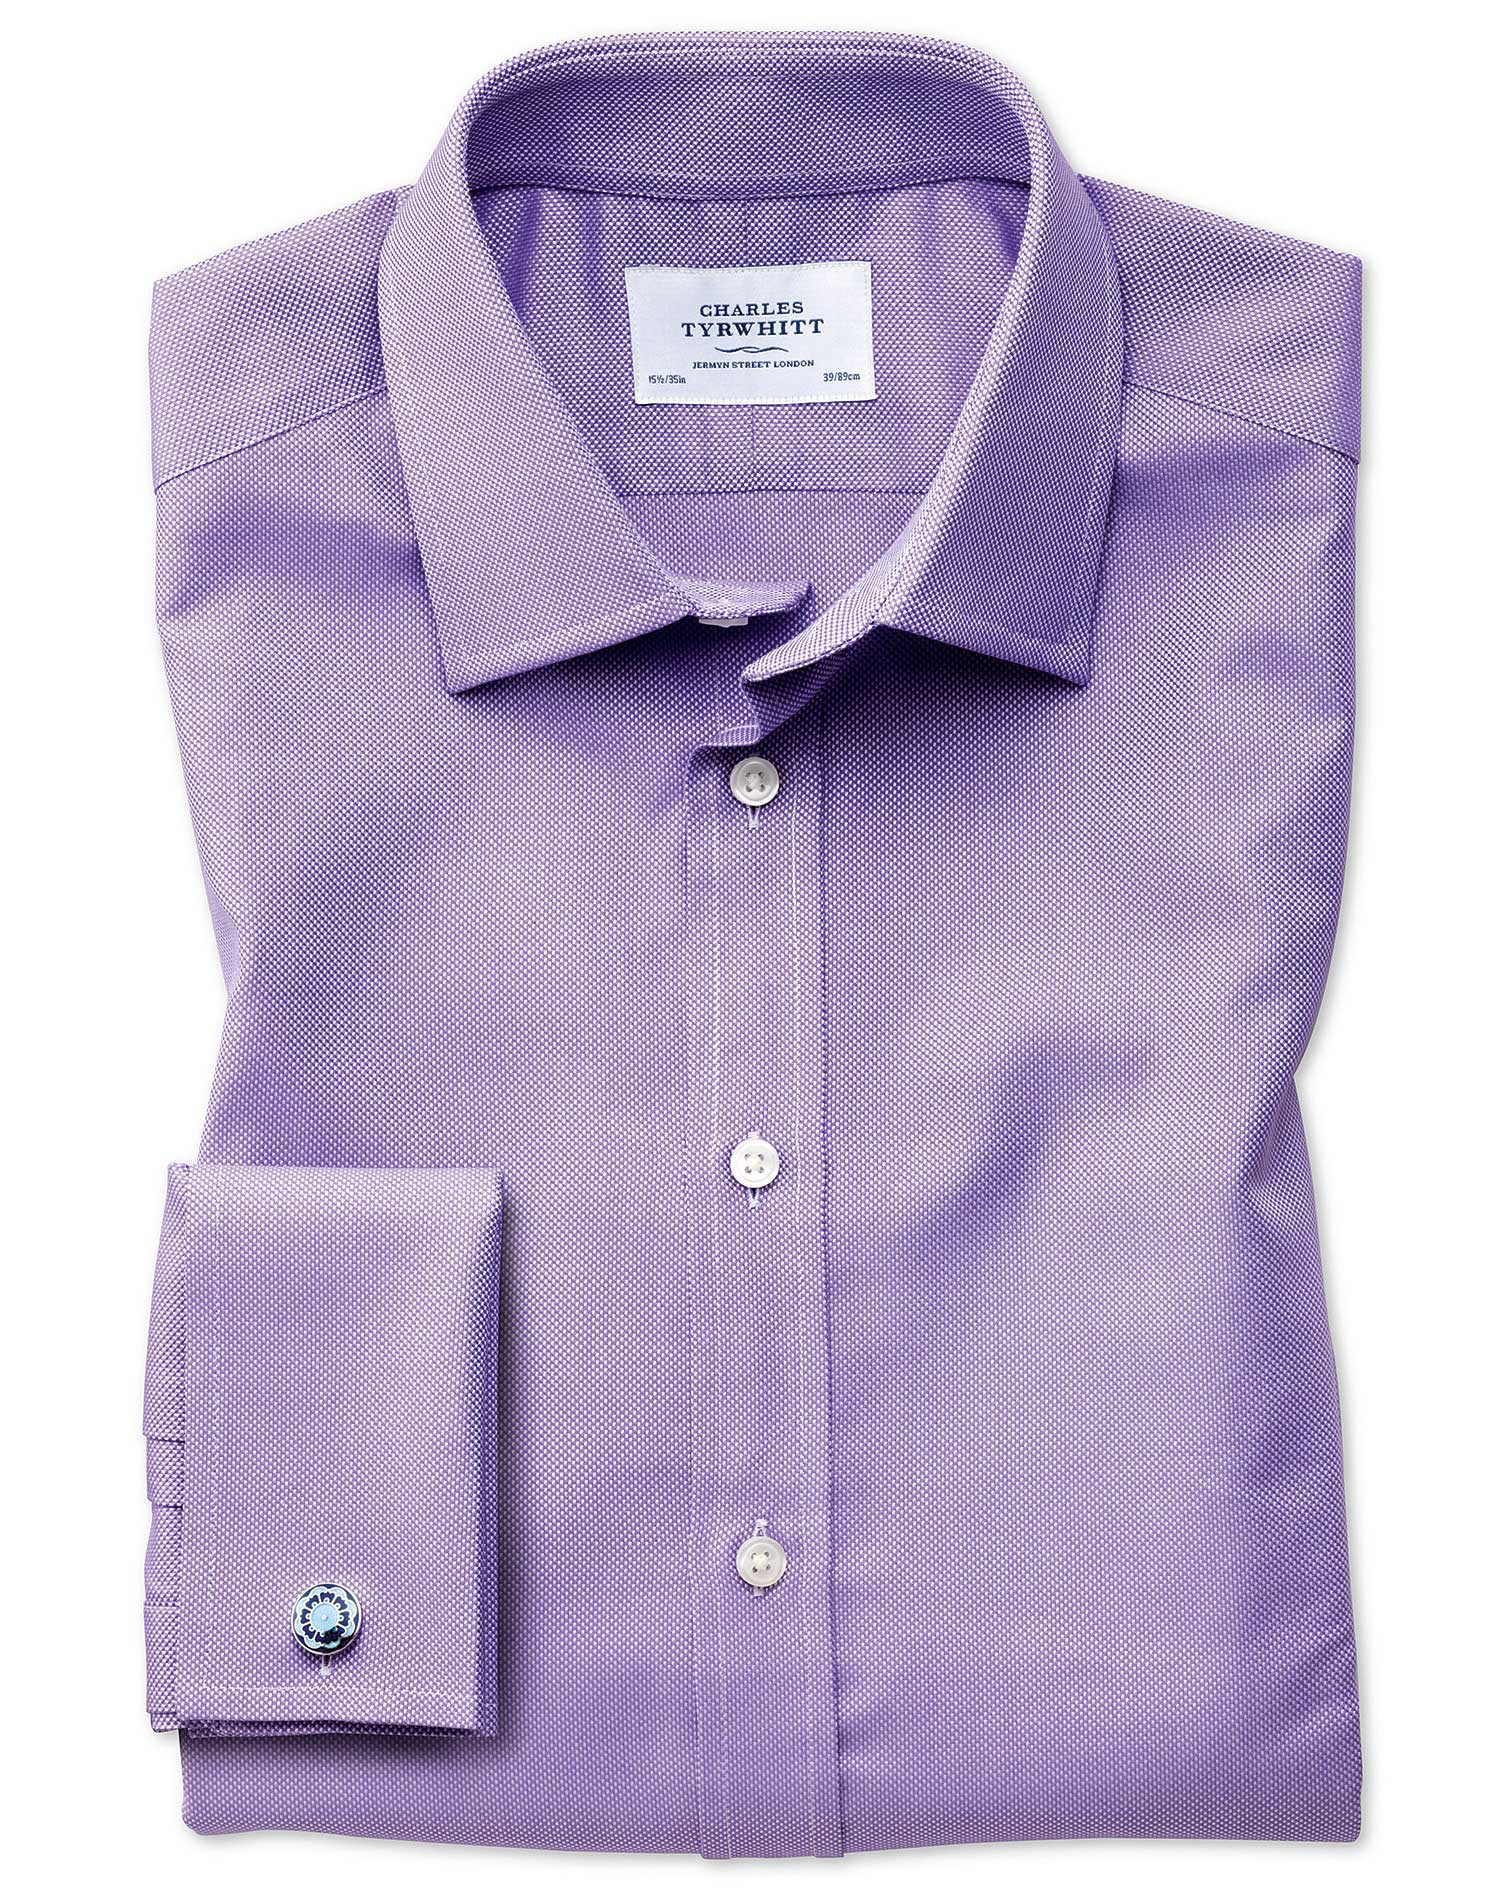 Extra Slim Fit Egyptian Cotton Royal Oxford Lilac Formal Shirt Double Cuff Size 14.5/33 by Charles T